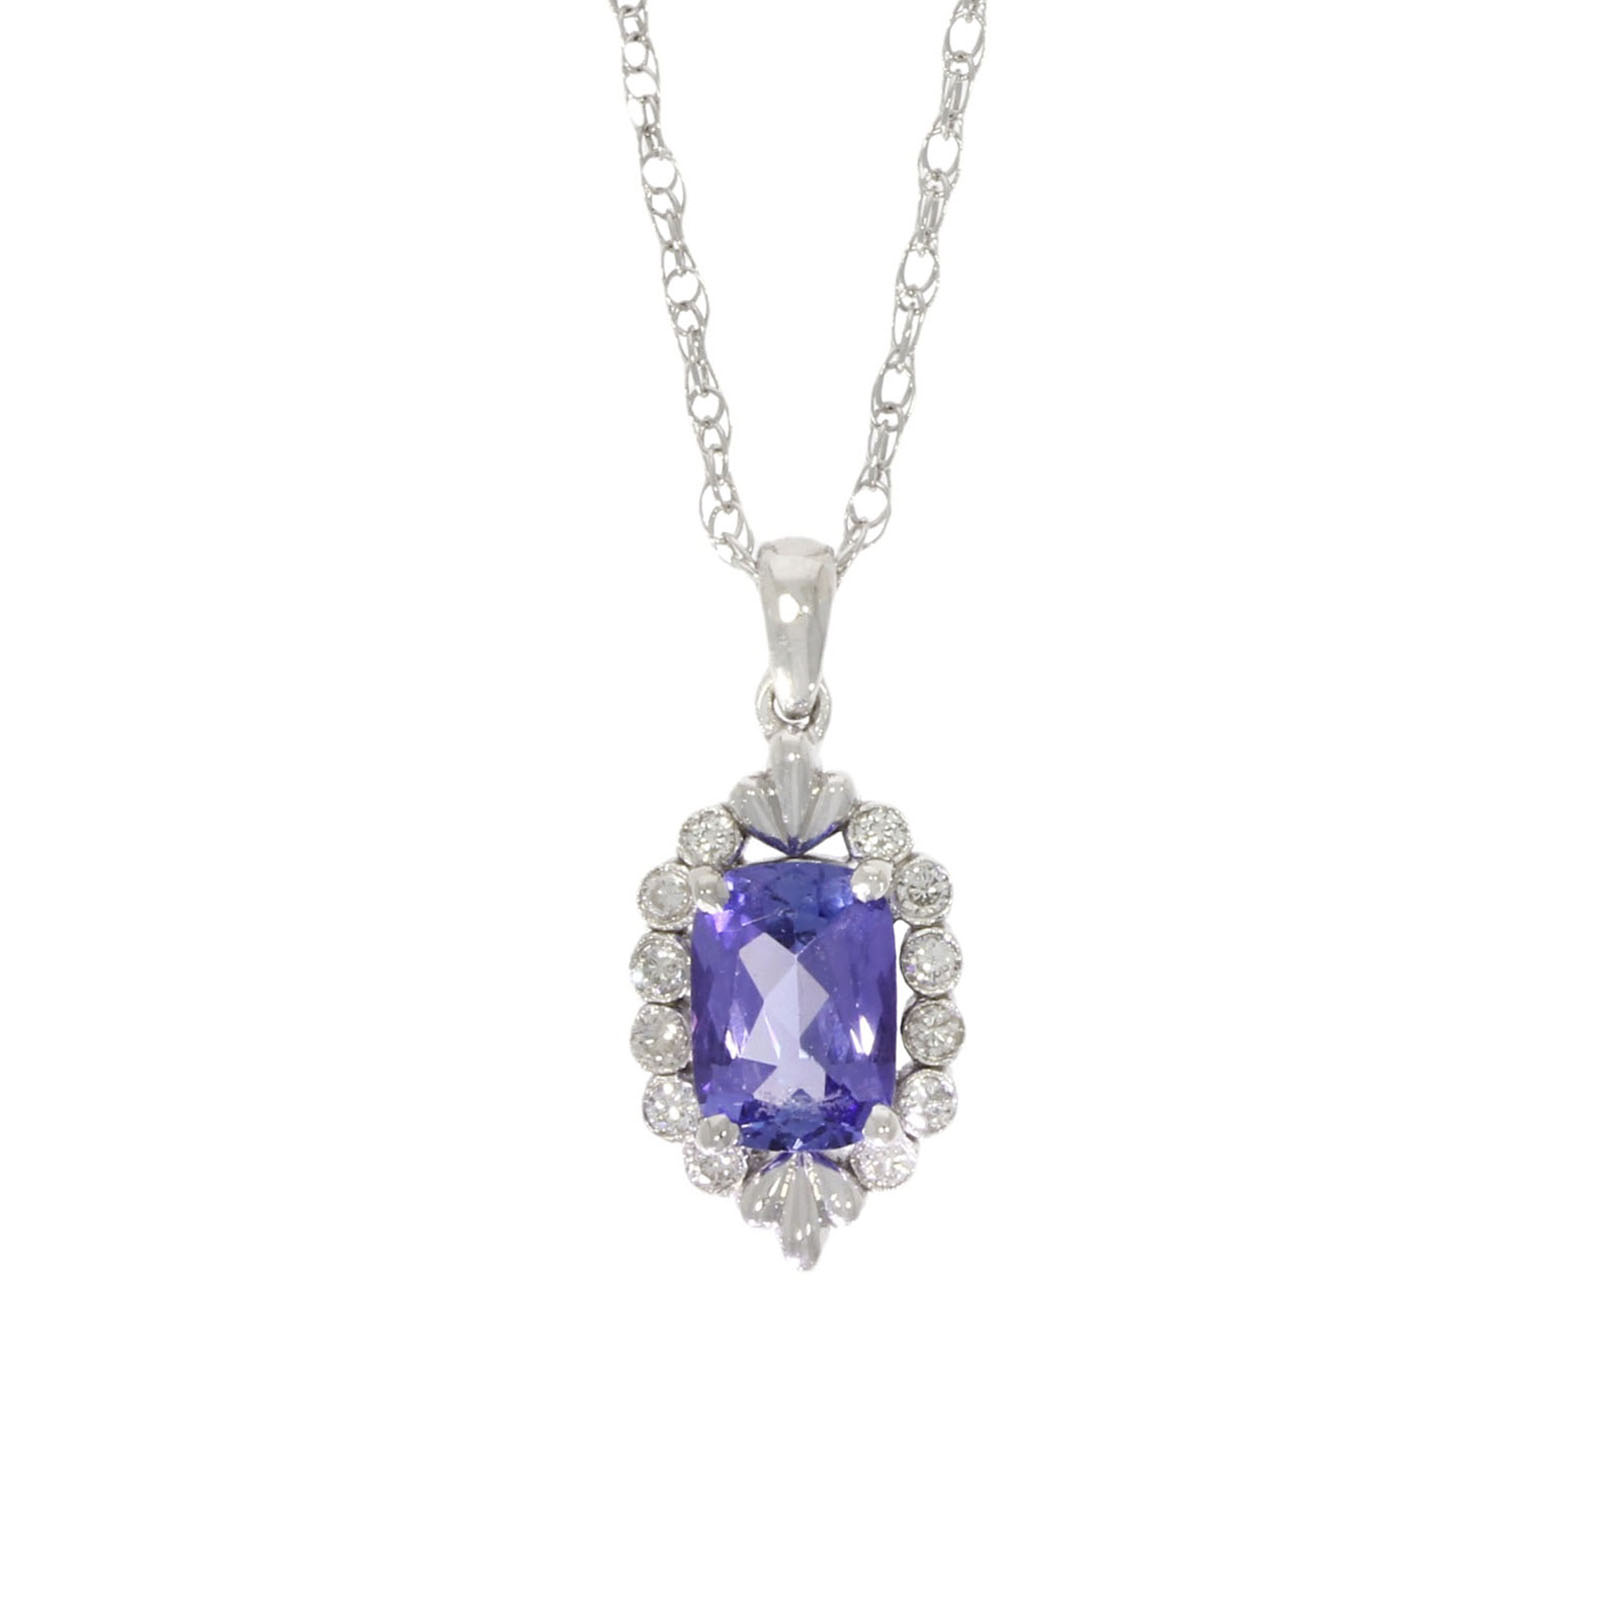 An tiny ornate diamond and tanzanite wylde couture jewellery piece